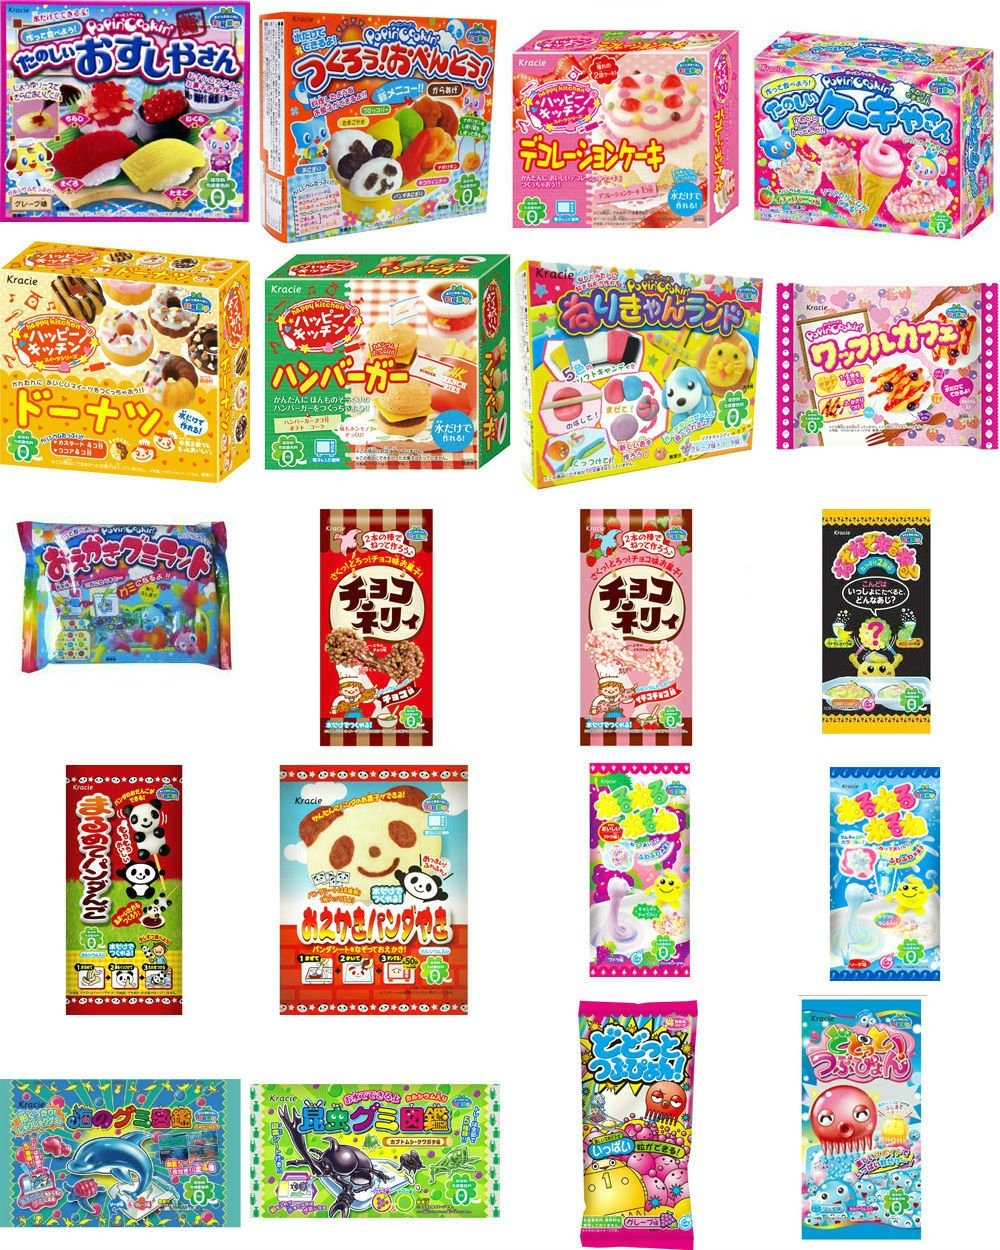 Popin cookin amazon - Amazon Com Kracie Popin Cookin 20 Item Bundle With Sushi Hamburger Bento Donuts Cake Shop And More Gummy Candy Grocery Gourmet Food